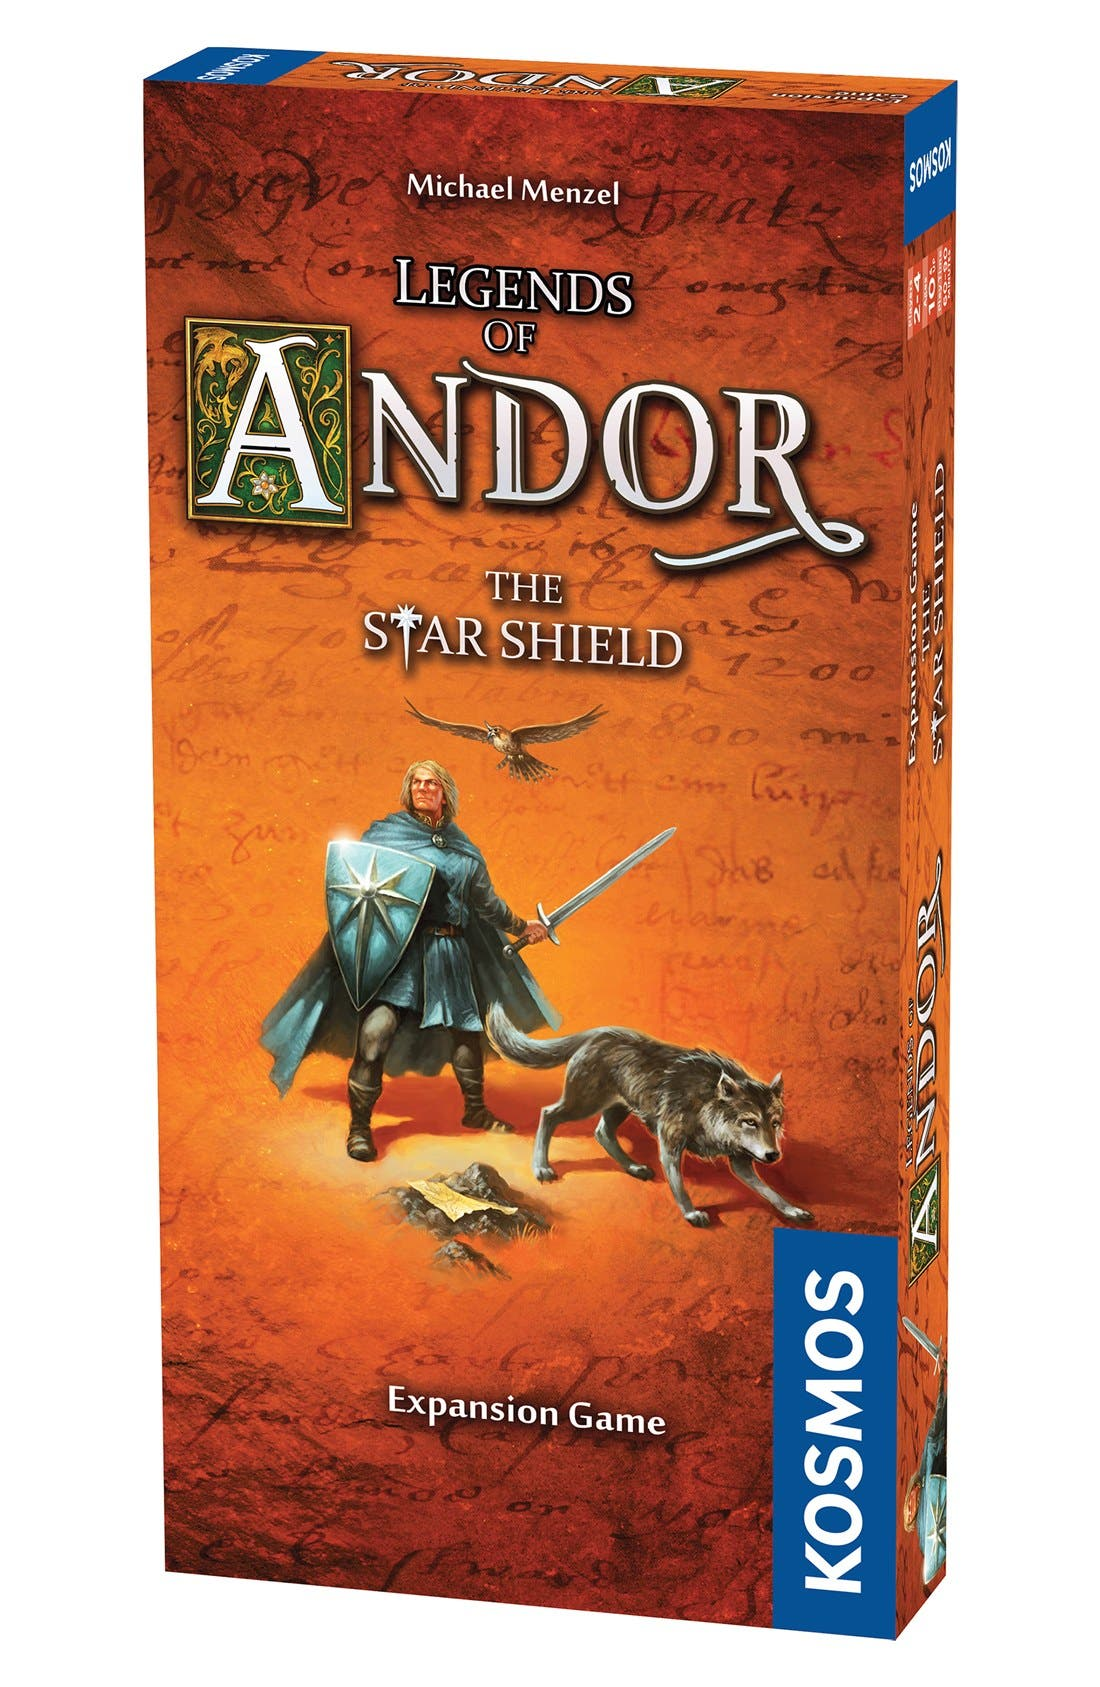 Thames & Kosmos 'Legends of Andor - The Star Shield' Game Expansion Pack